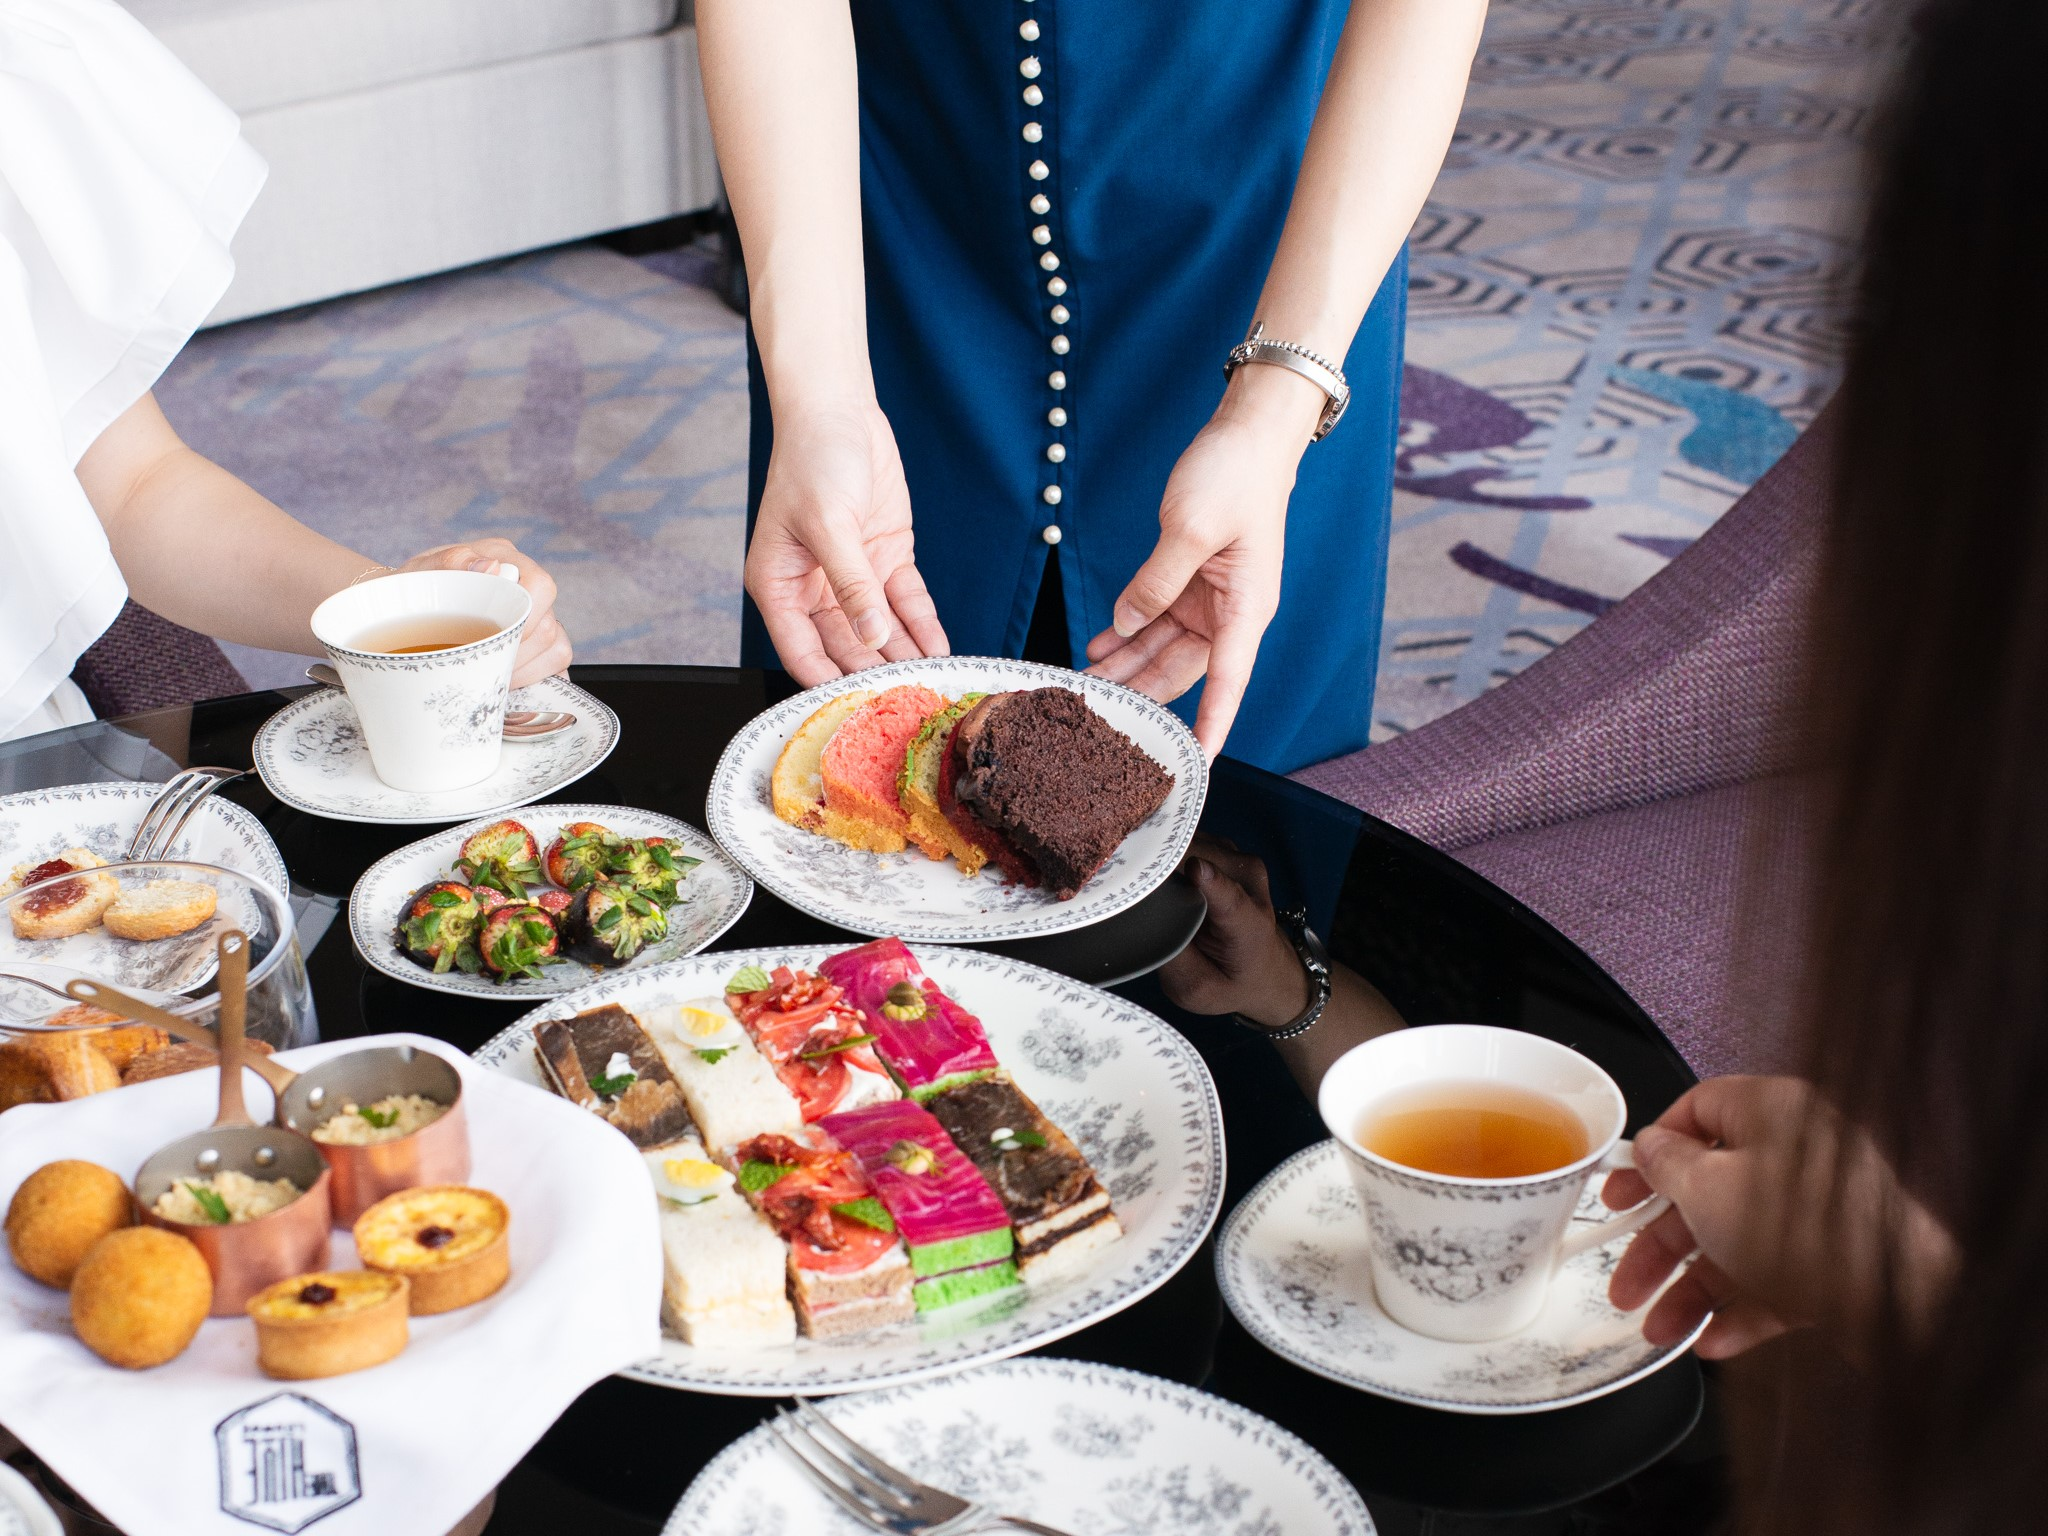 afternoon tea at Hanoi hotel Hive Lounge